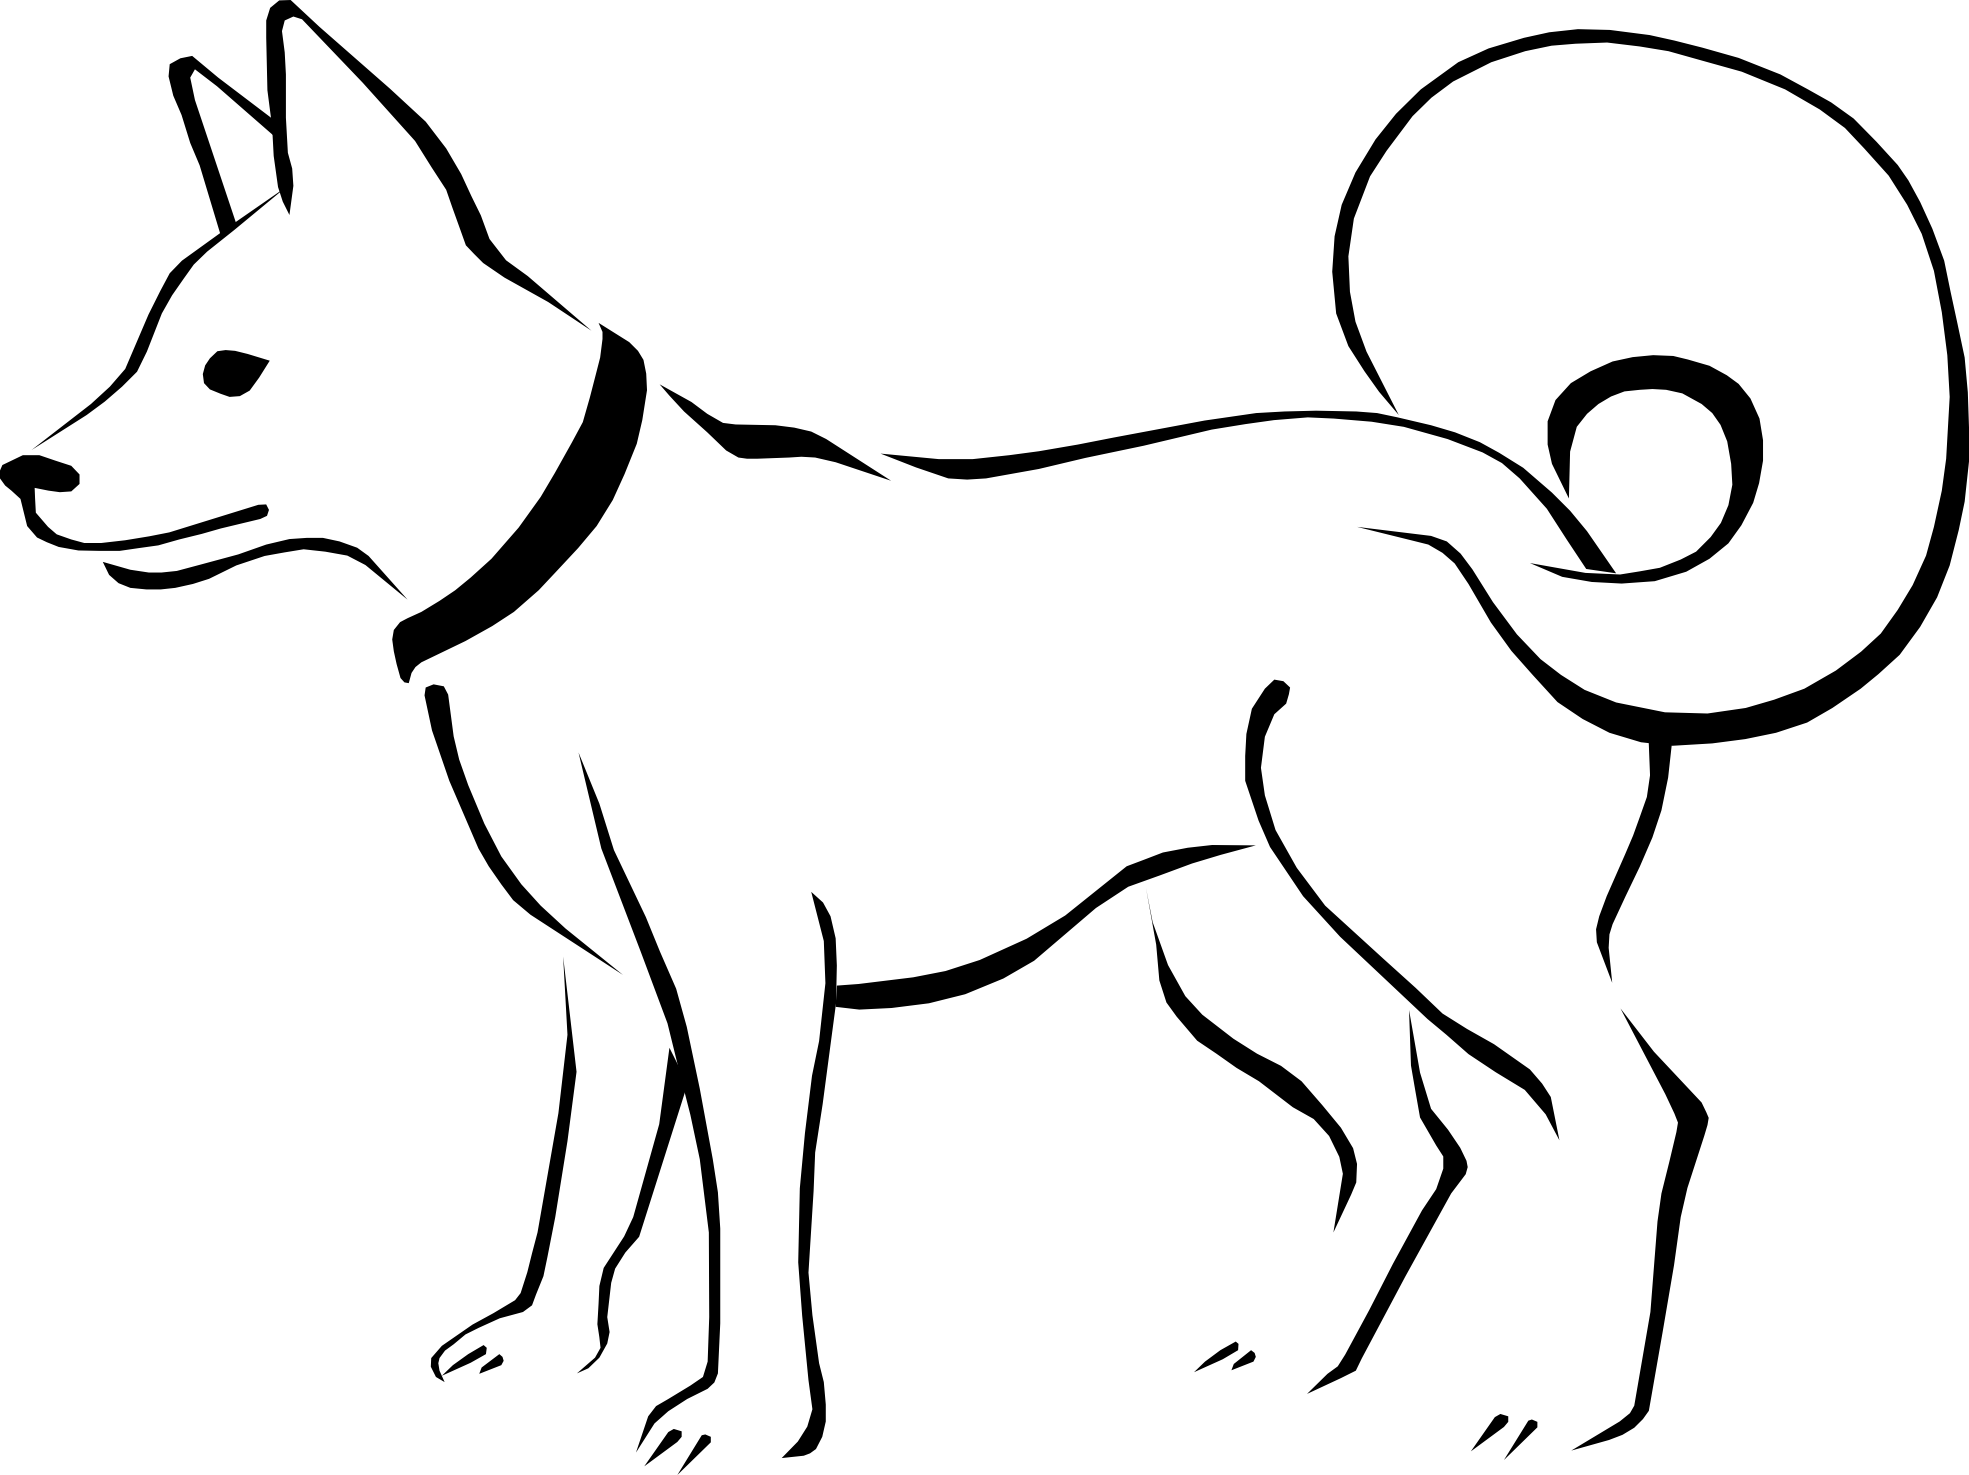 doggy drawing 2 dog